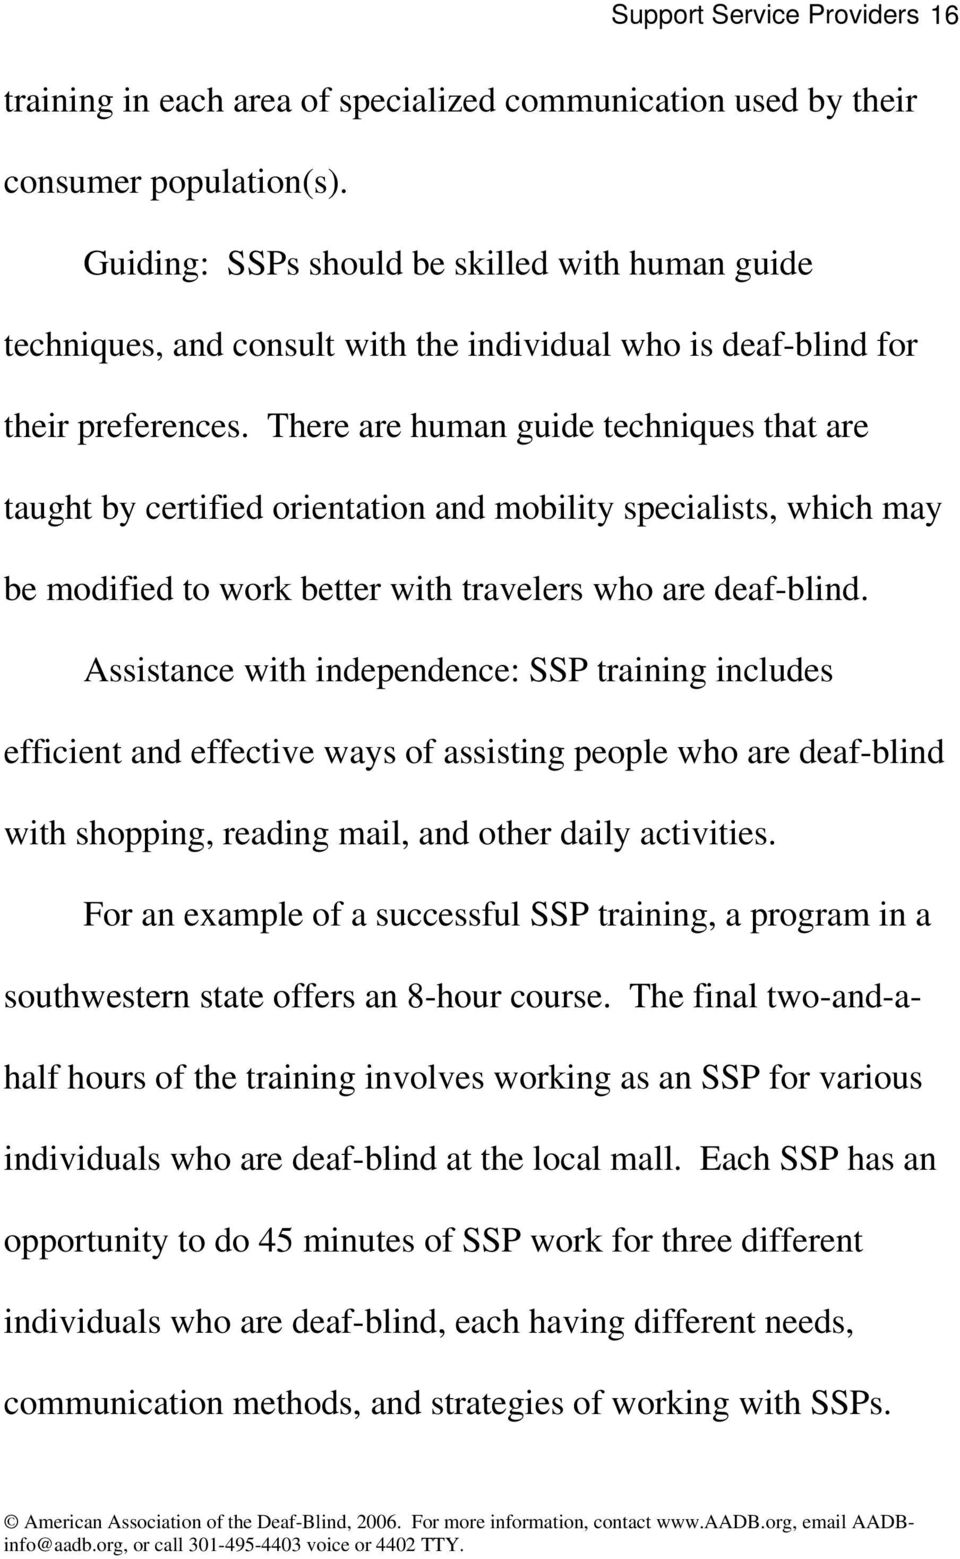 There are human guide techniques that are taught by certified orientation and mobility specialists, which may be modified to work better with travelers who are deaf-blind.